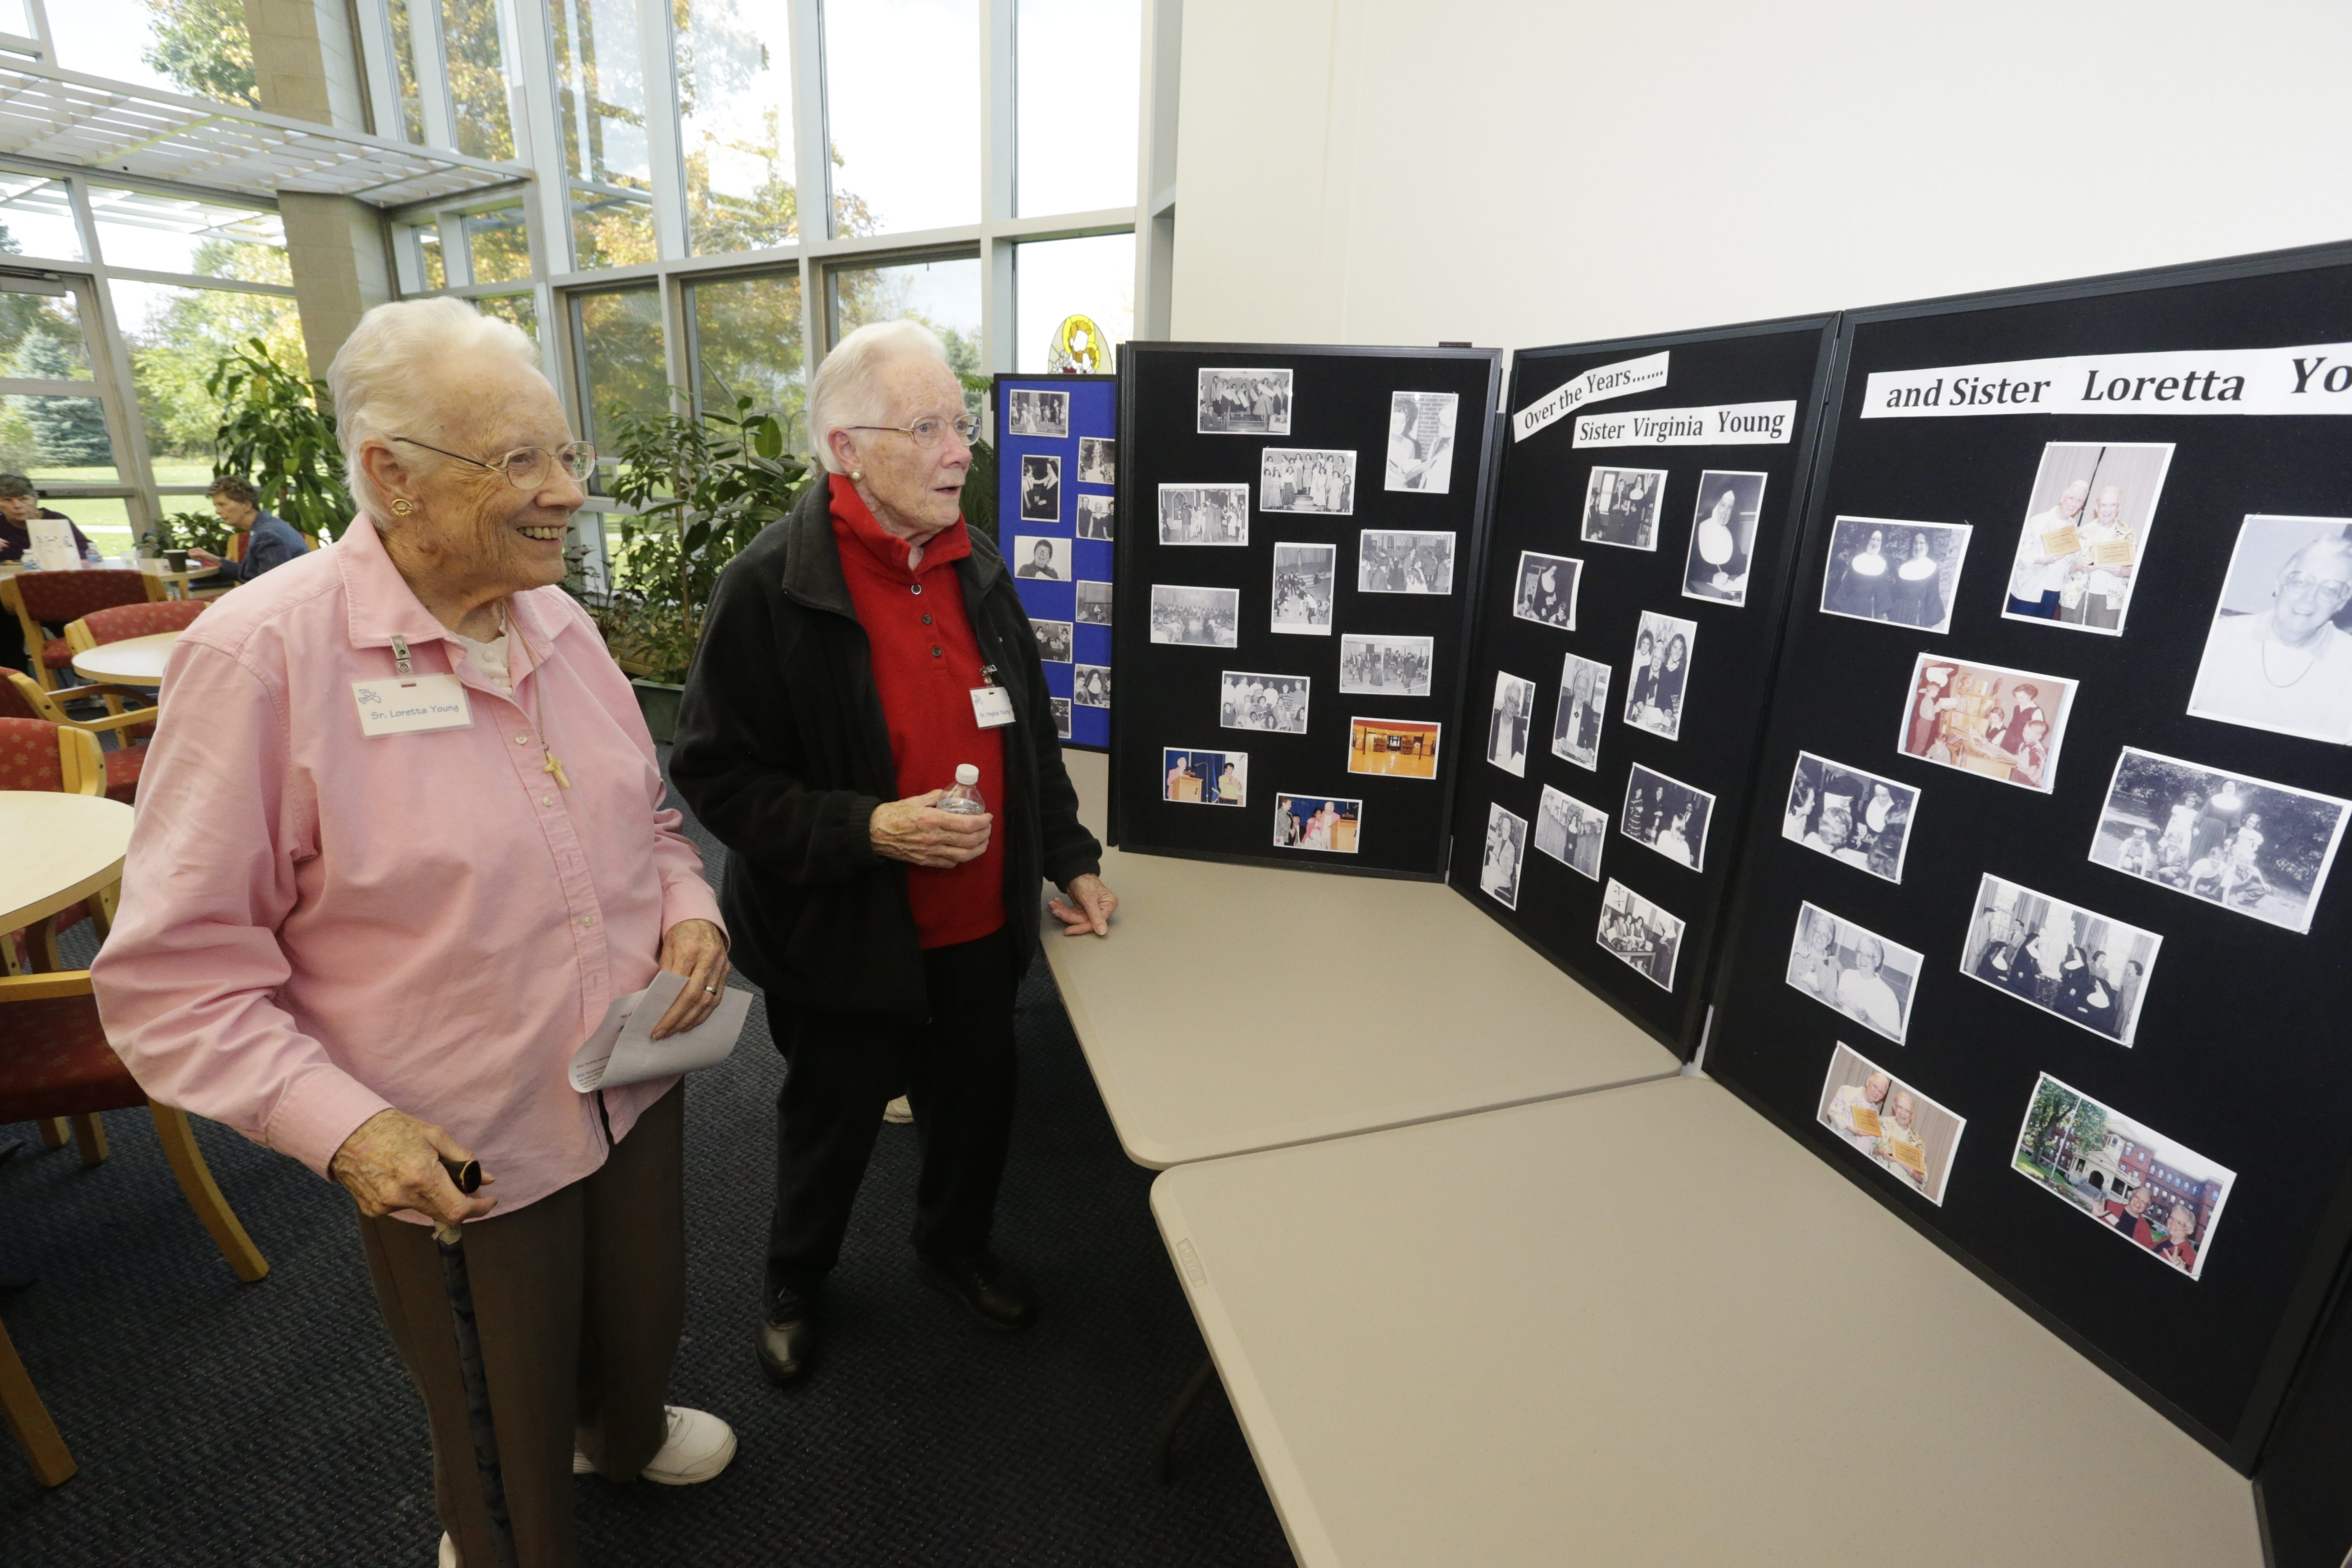 Sister Loretta Young, left, and her twin, Sister Virginia Young, look at old photographs during an open house to celebrate the 160th anniversary of the Sisters of St. Joseph in Buffalo on Sunday.